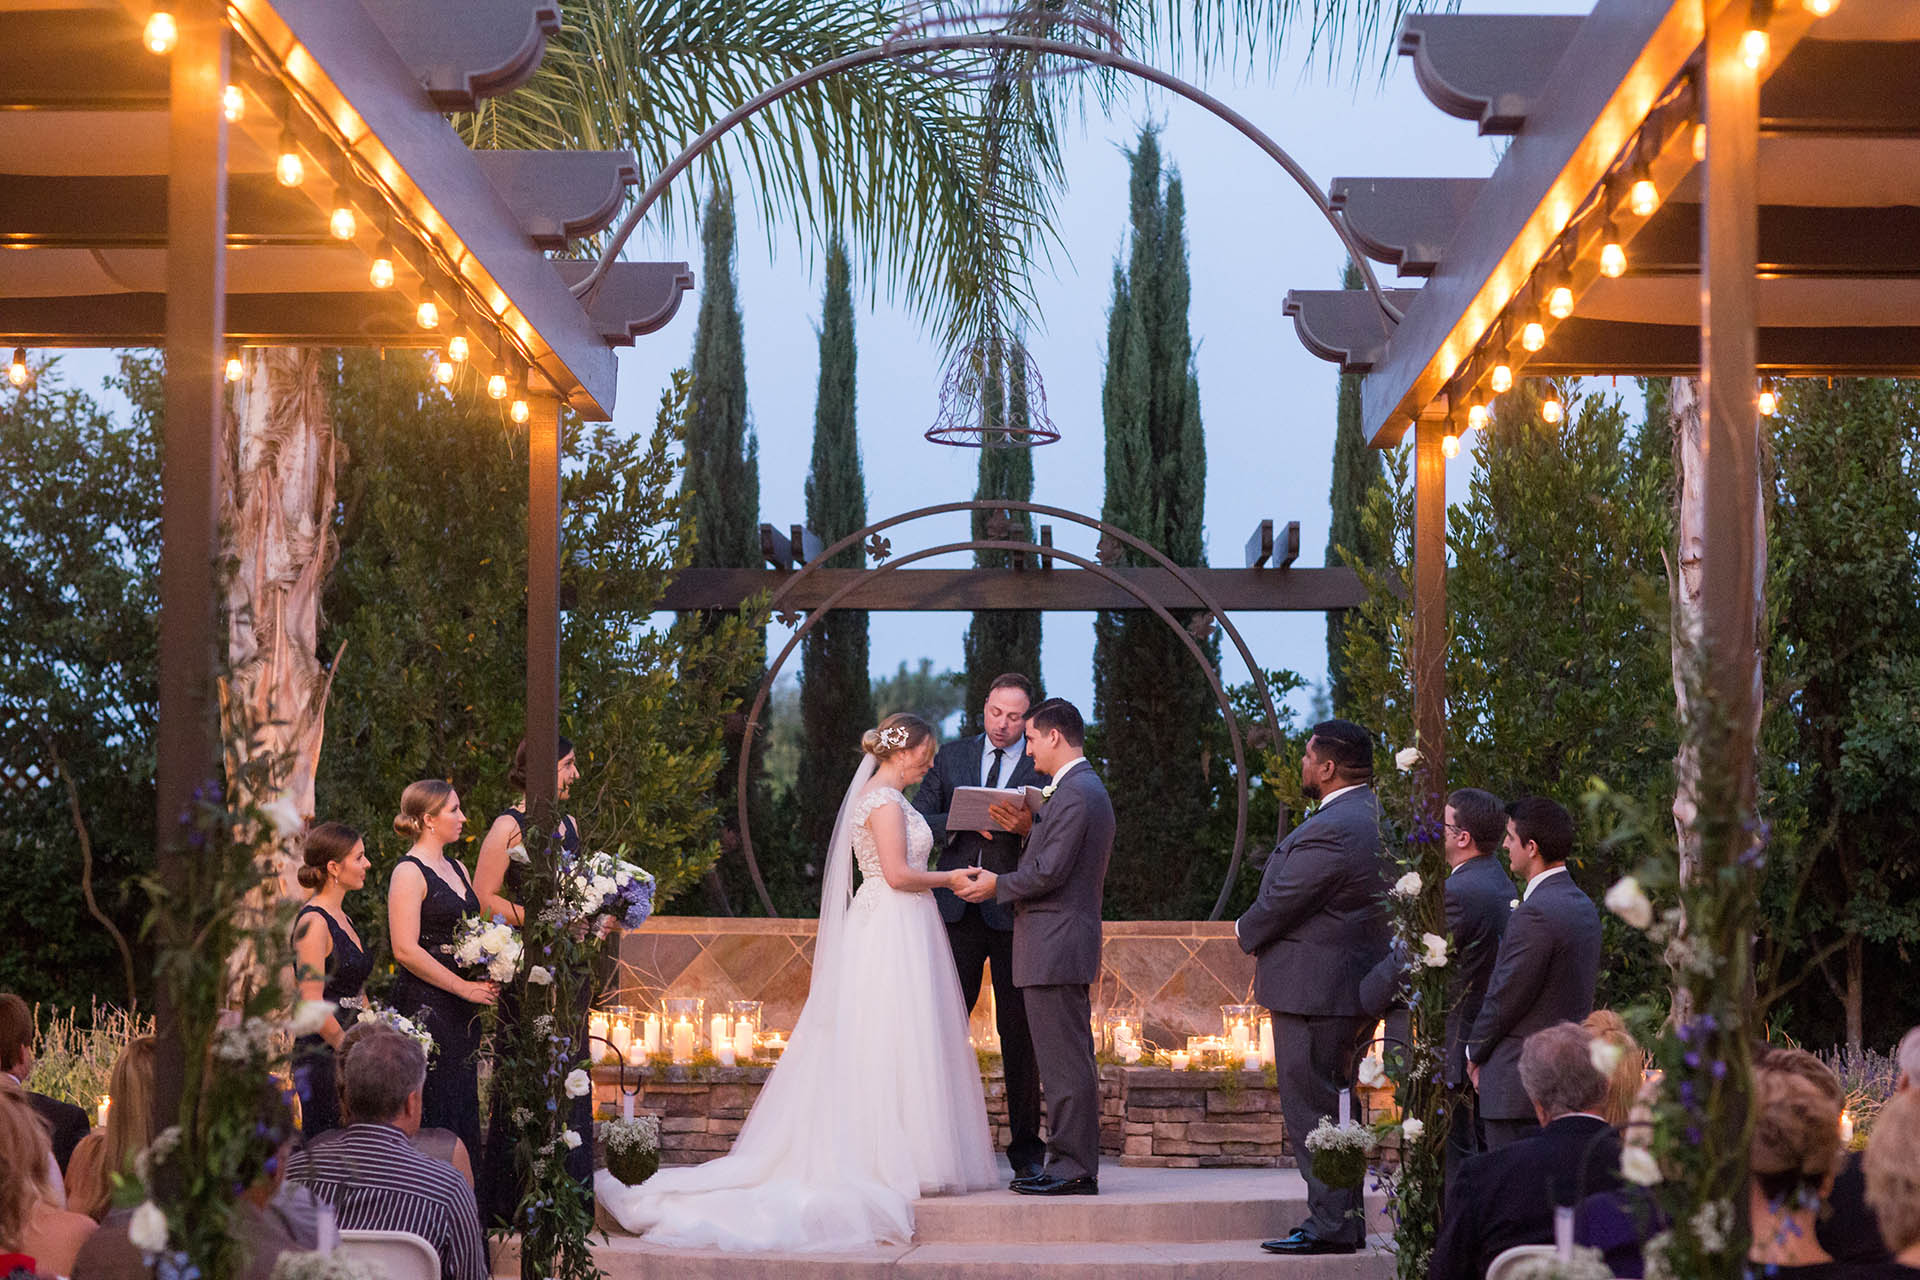 Romantic lighting during a golden hour wedding ceremony